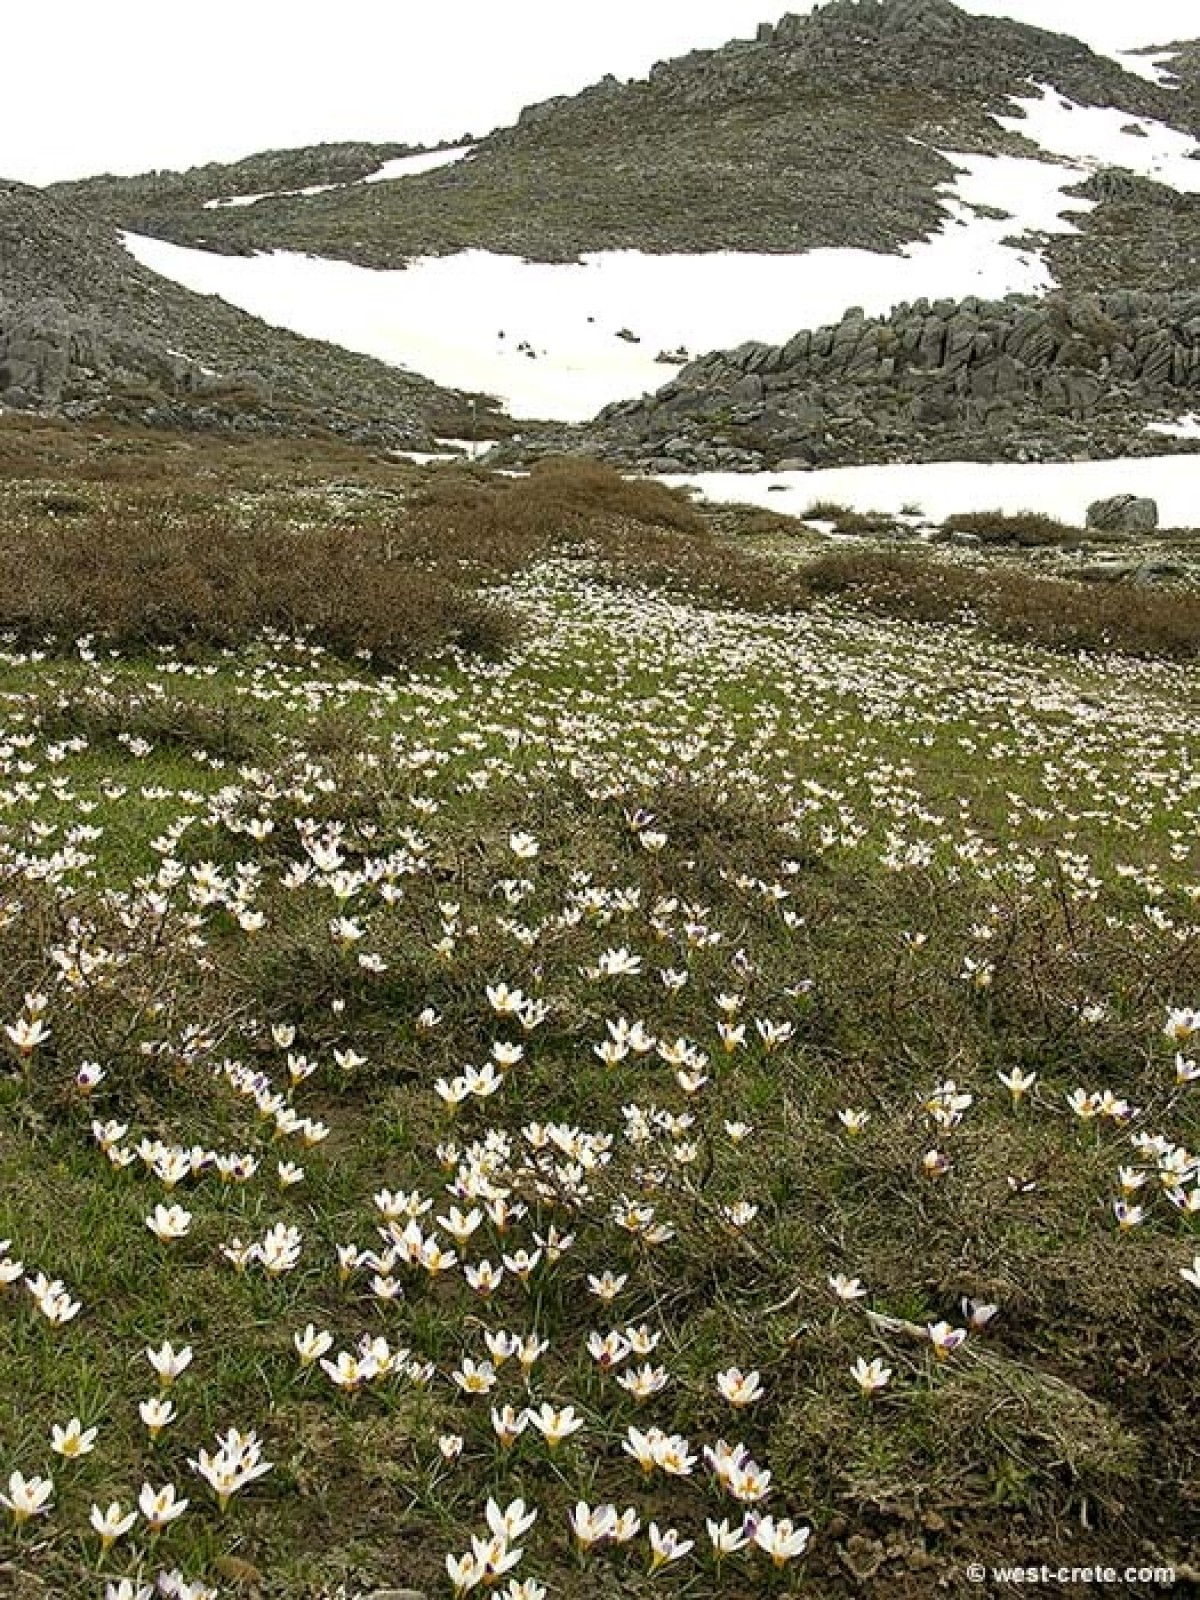 Field of Crocus sieberi